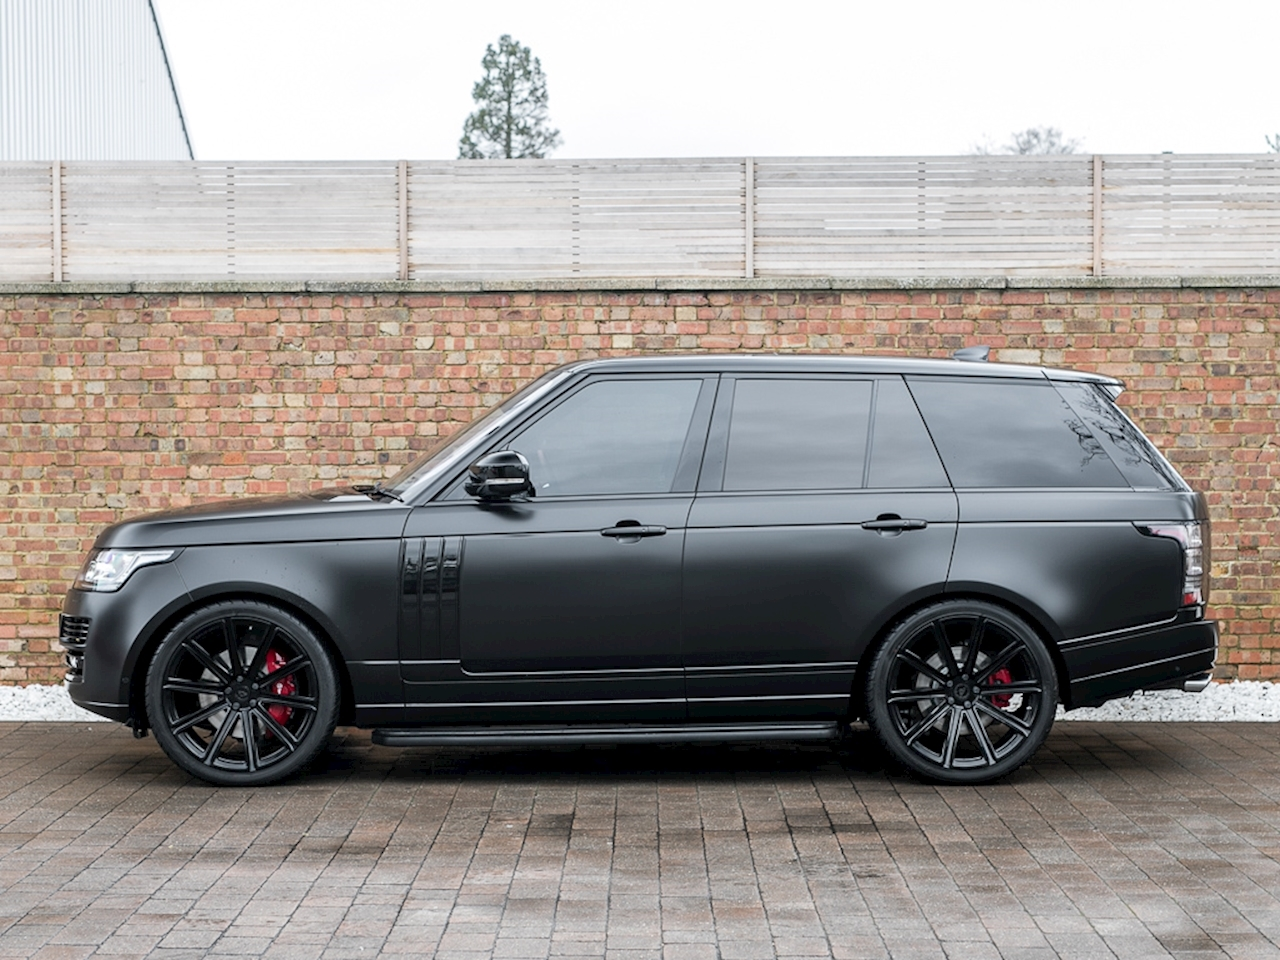 luxury cars: black Range rover